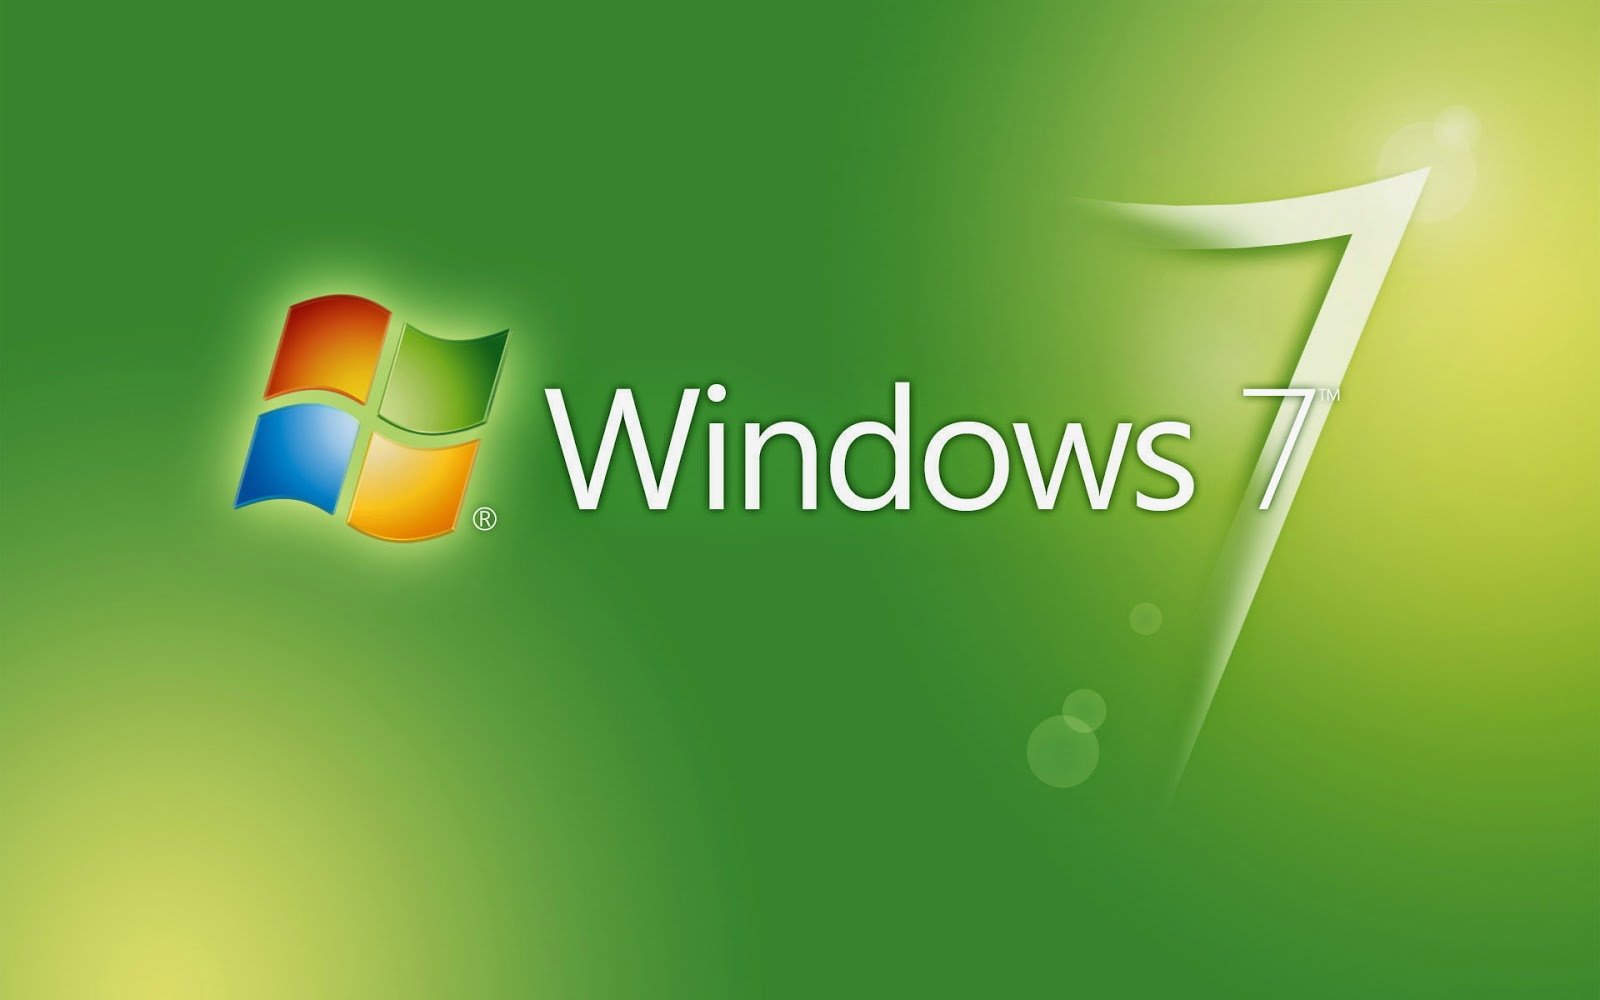 Get free windows 7 professional product key - Update daily